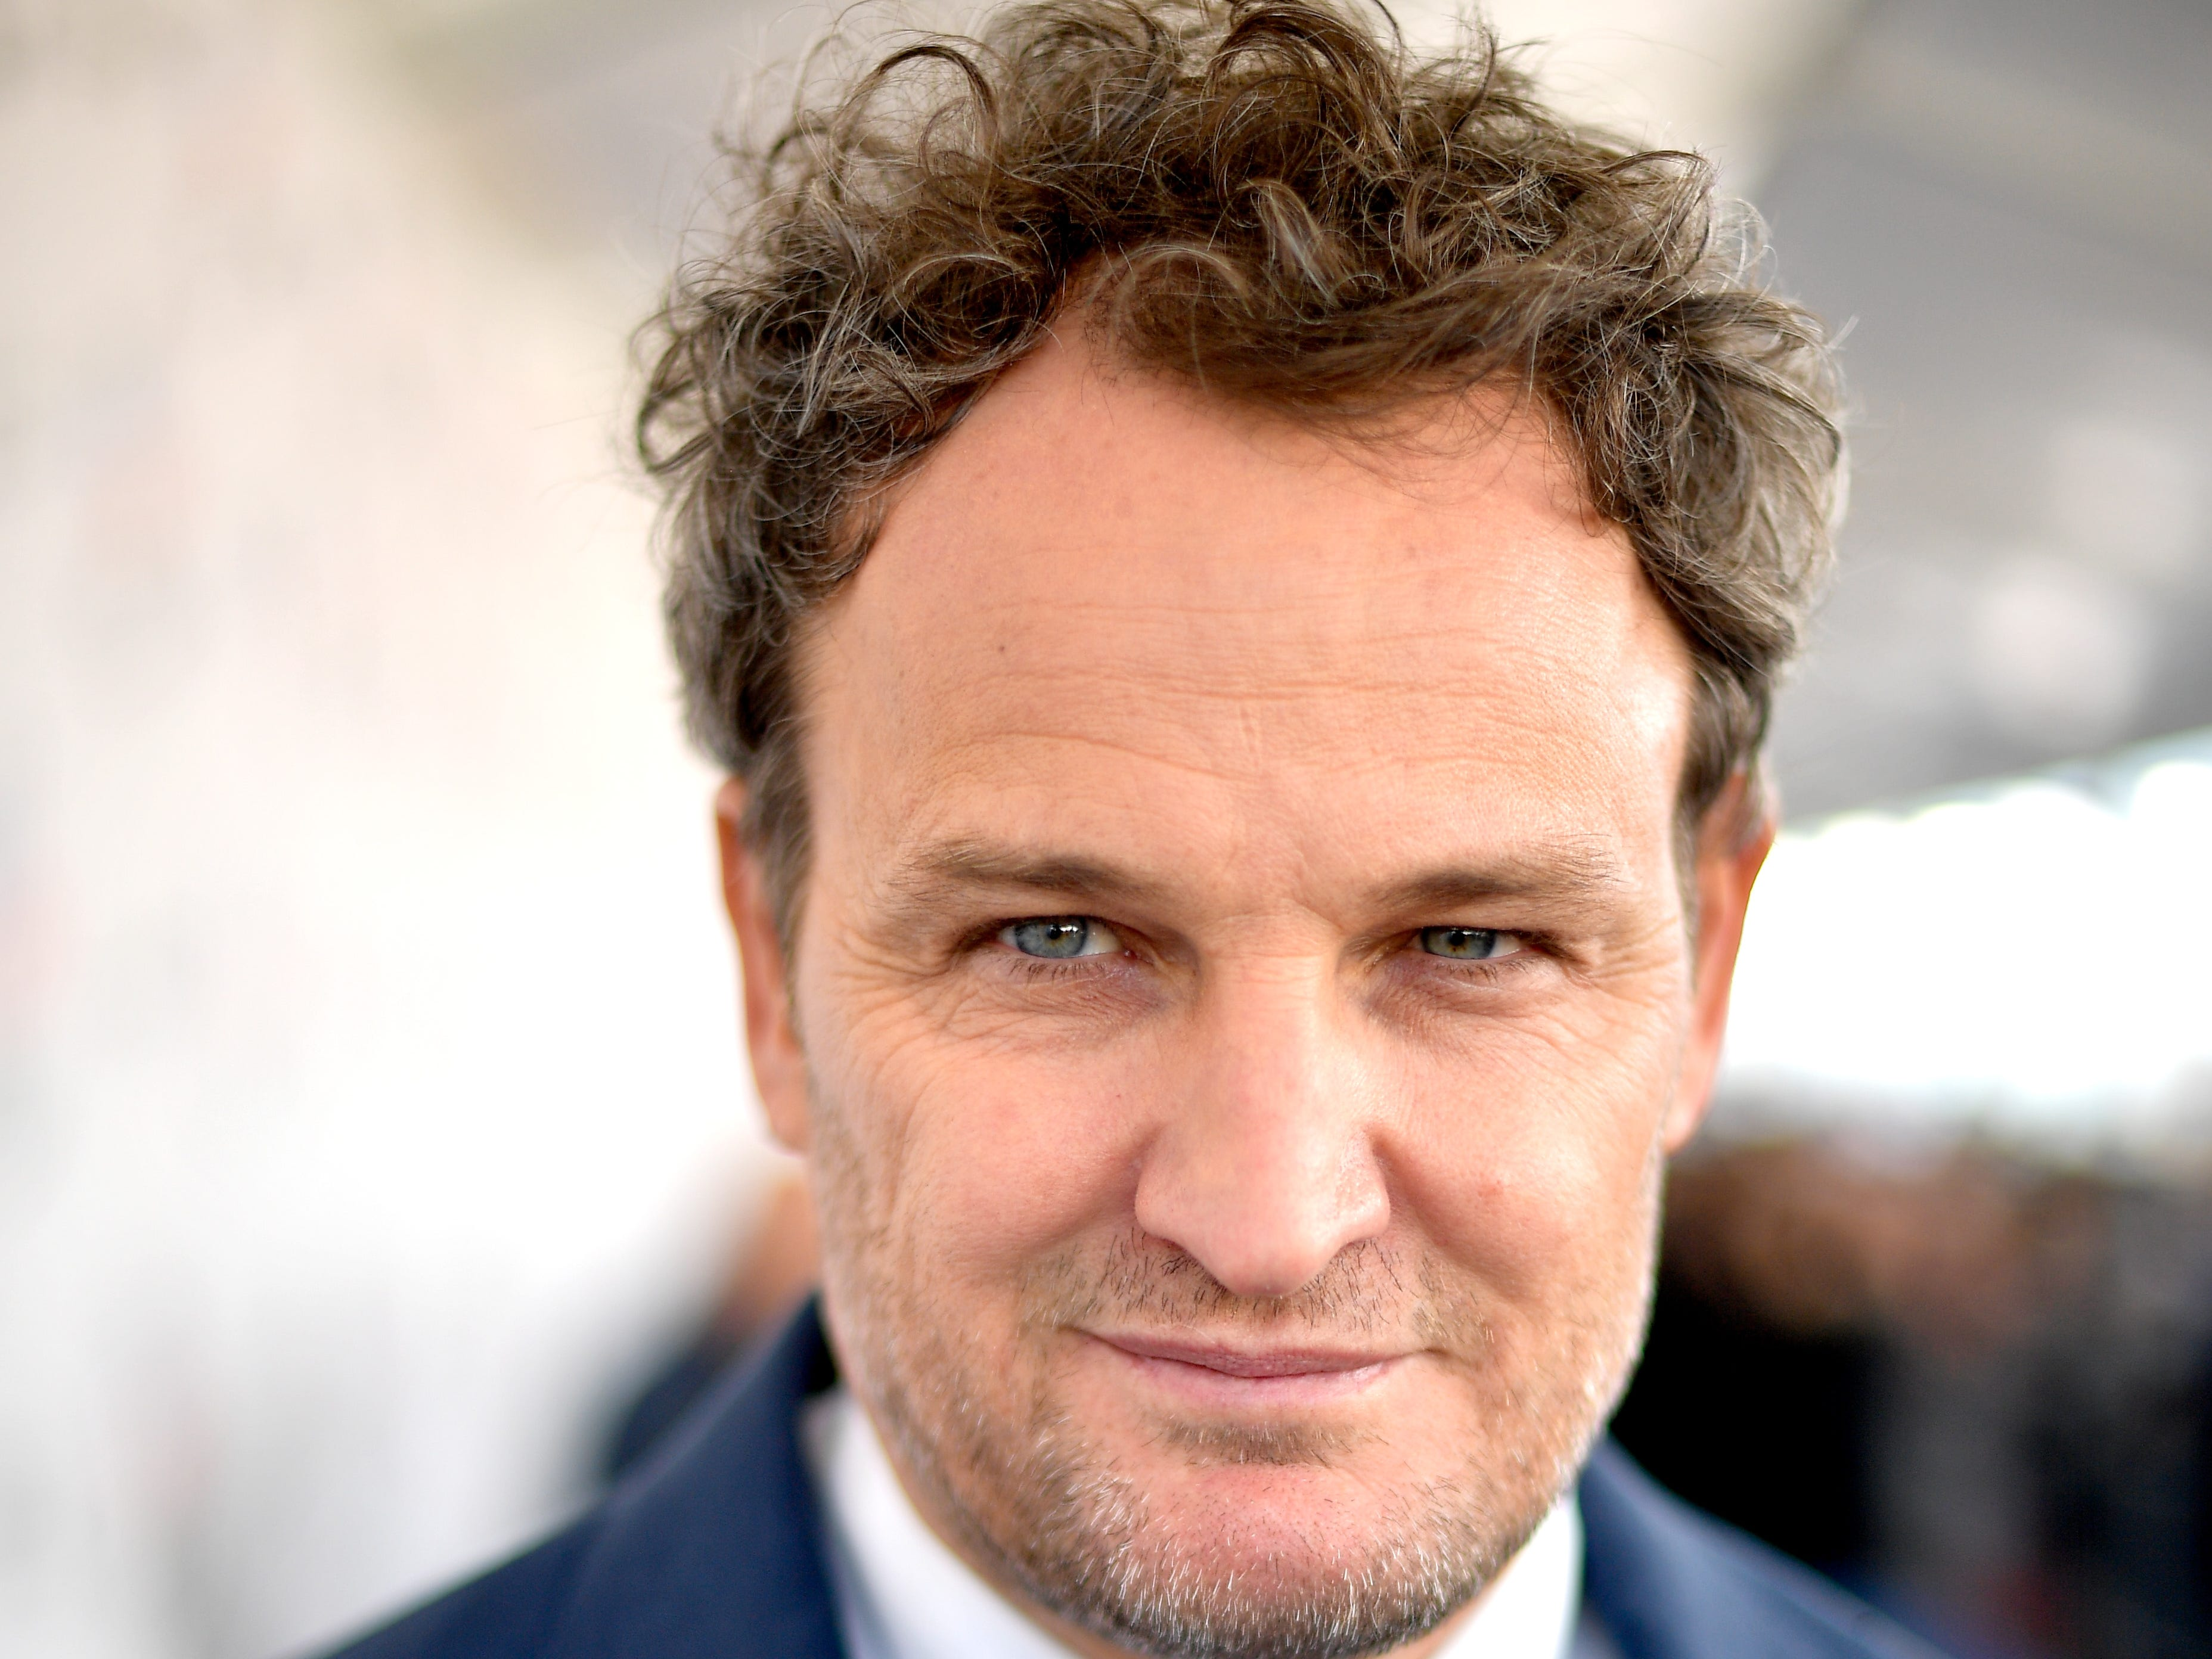 Jason Clarke attends the 2018 Film Independent Spirit Awards on March 3, 2018, in Santa Monica, California.